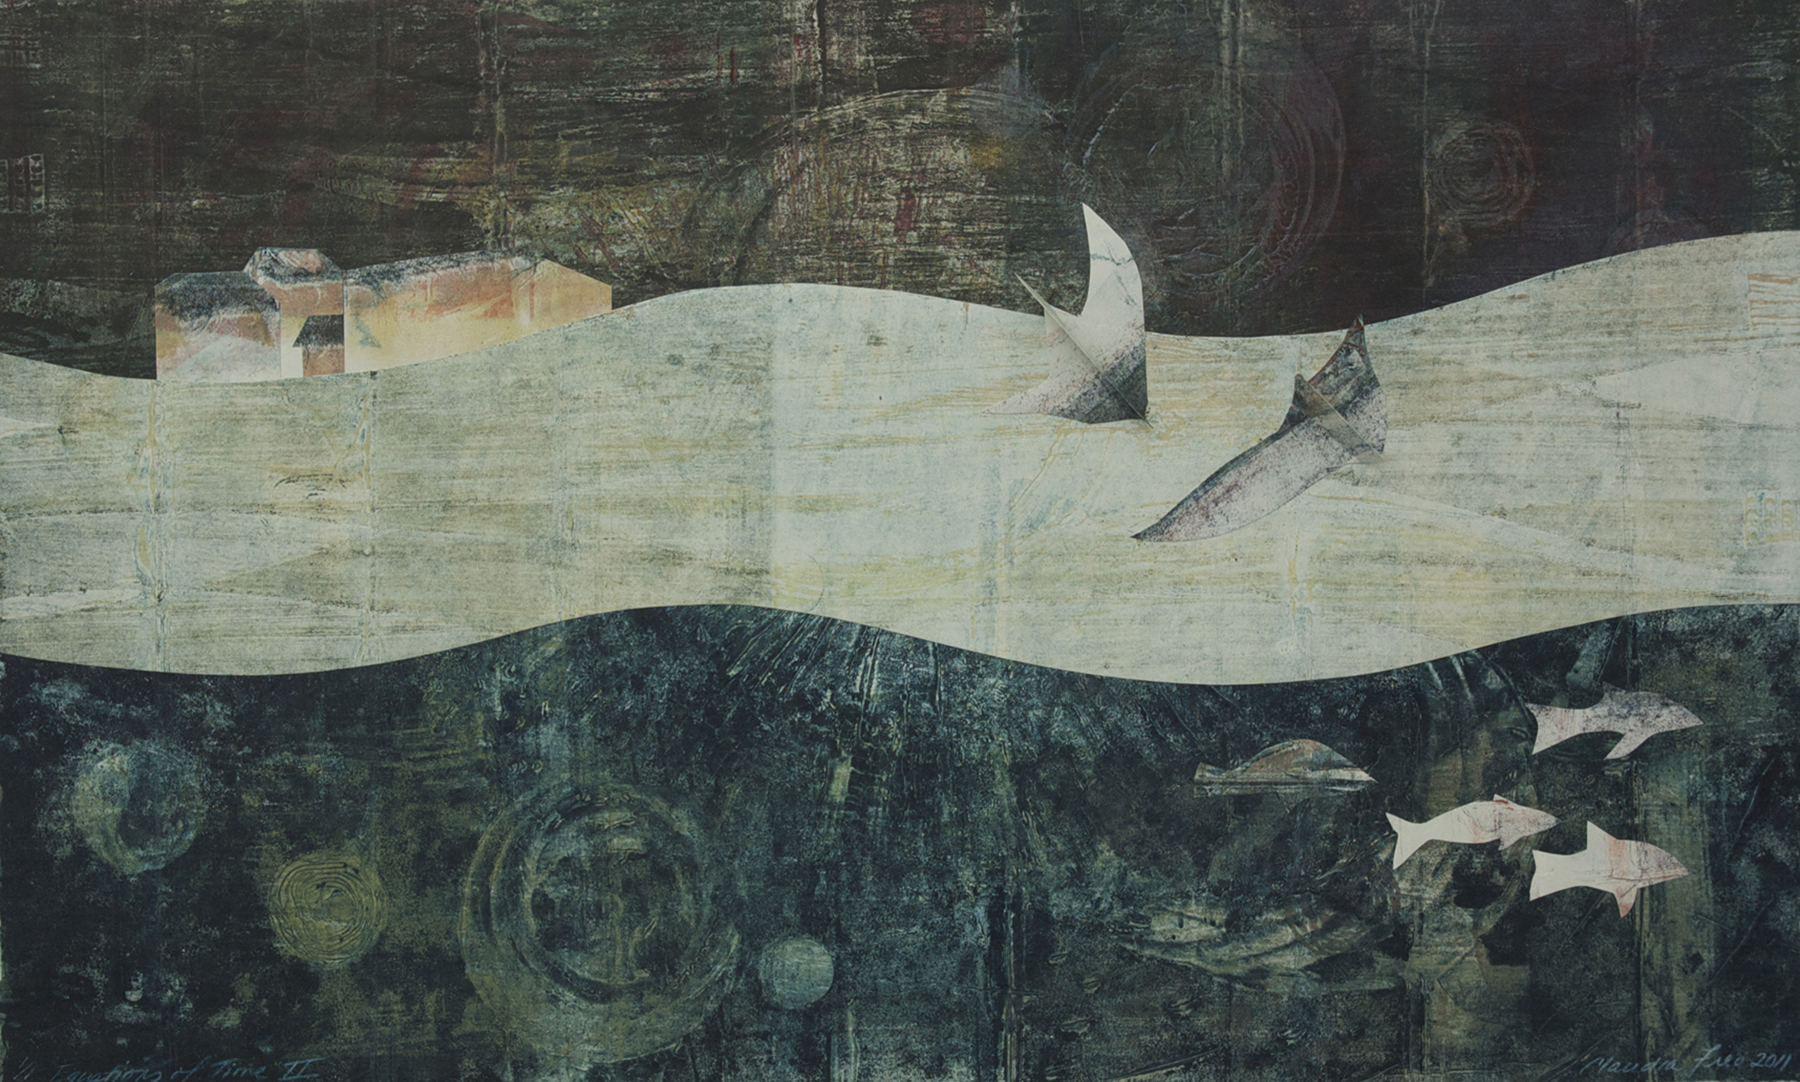 Equations of Time II, collagraph monoprint, collage, 2012